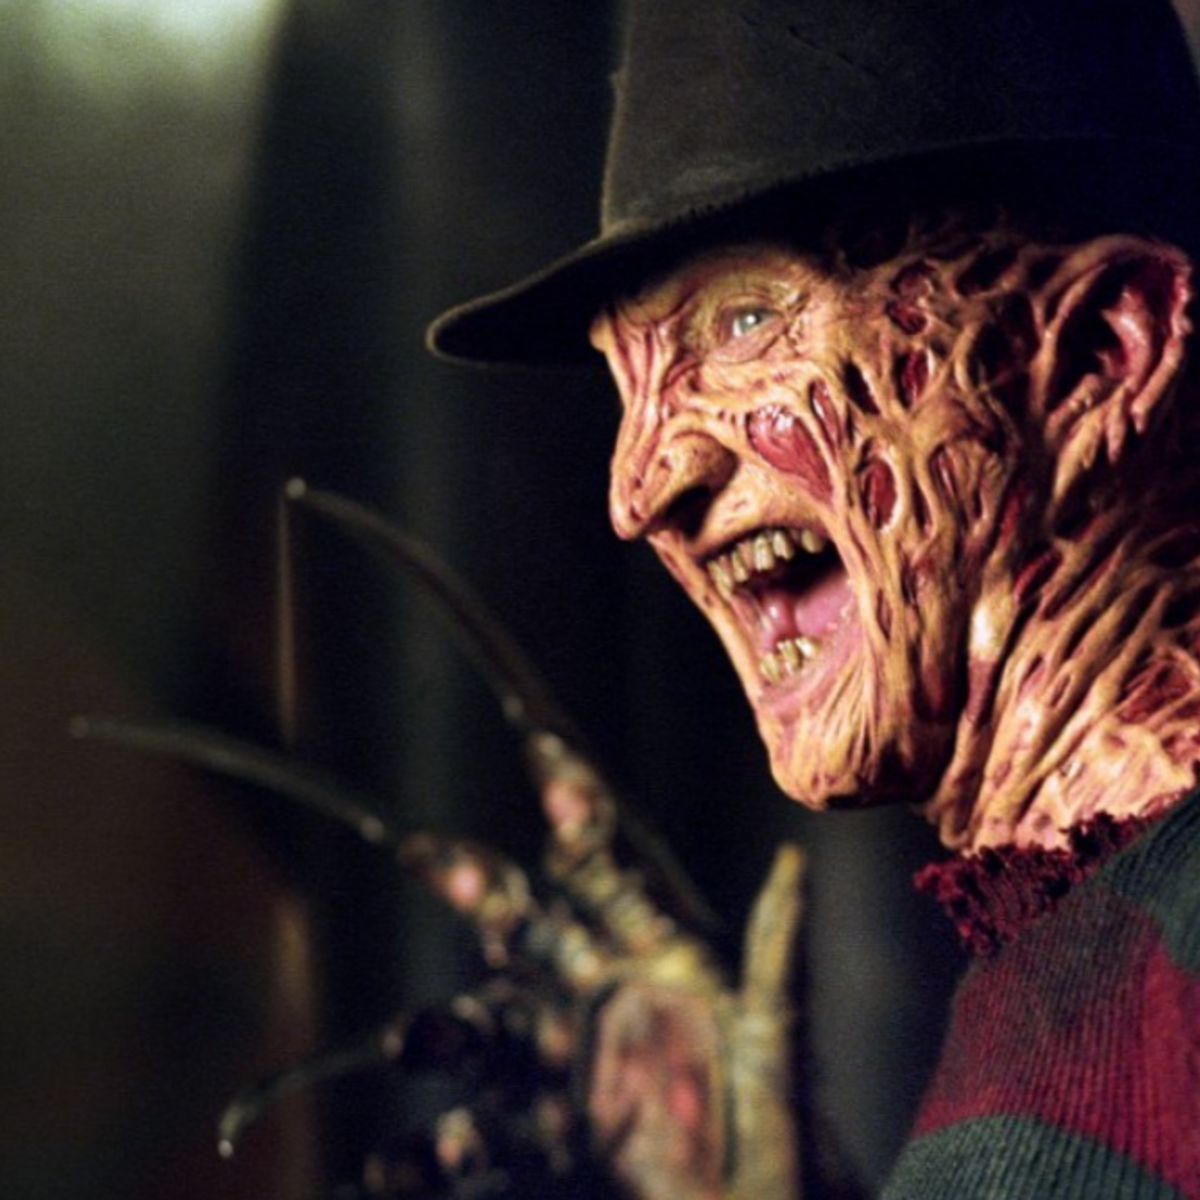 freddy krueger robert englund nightmare on elm street